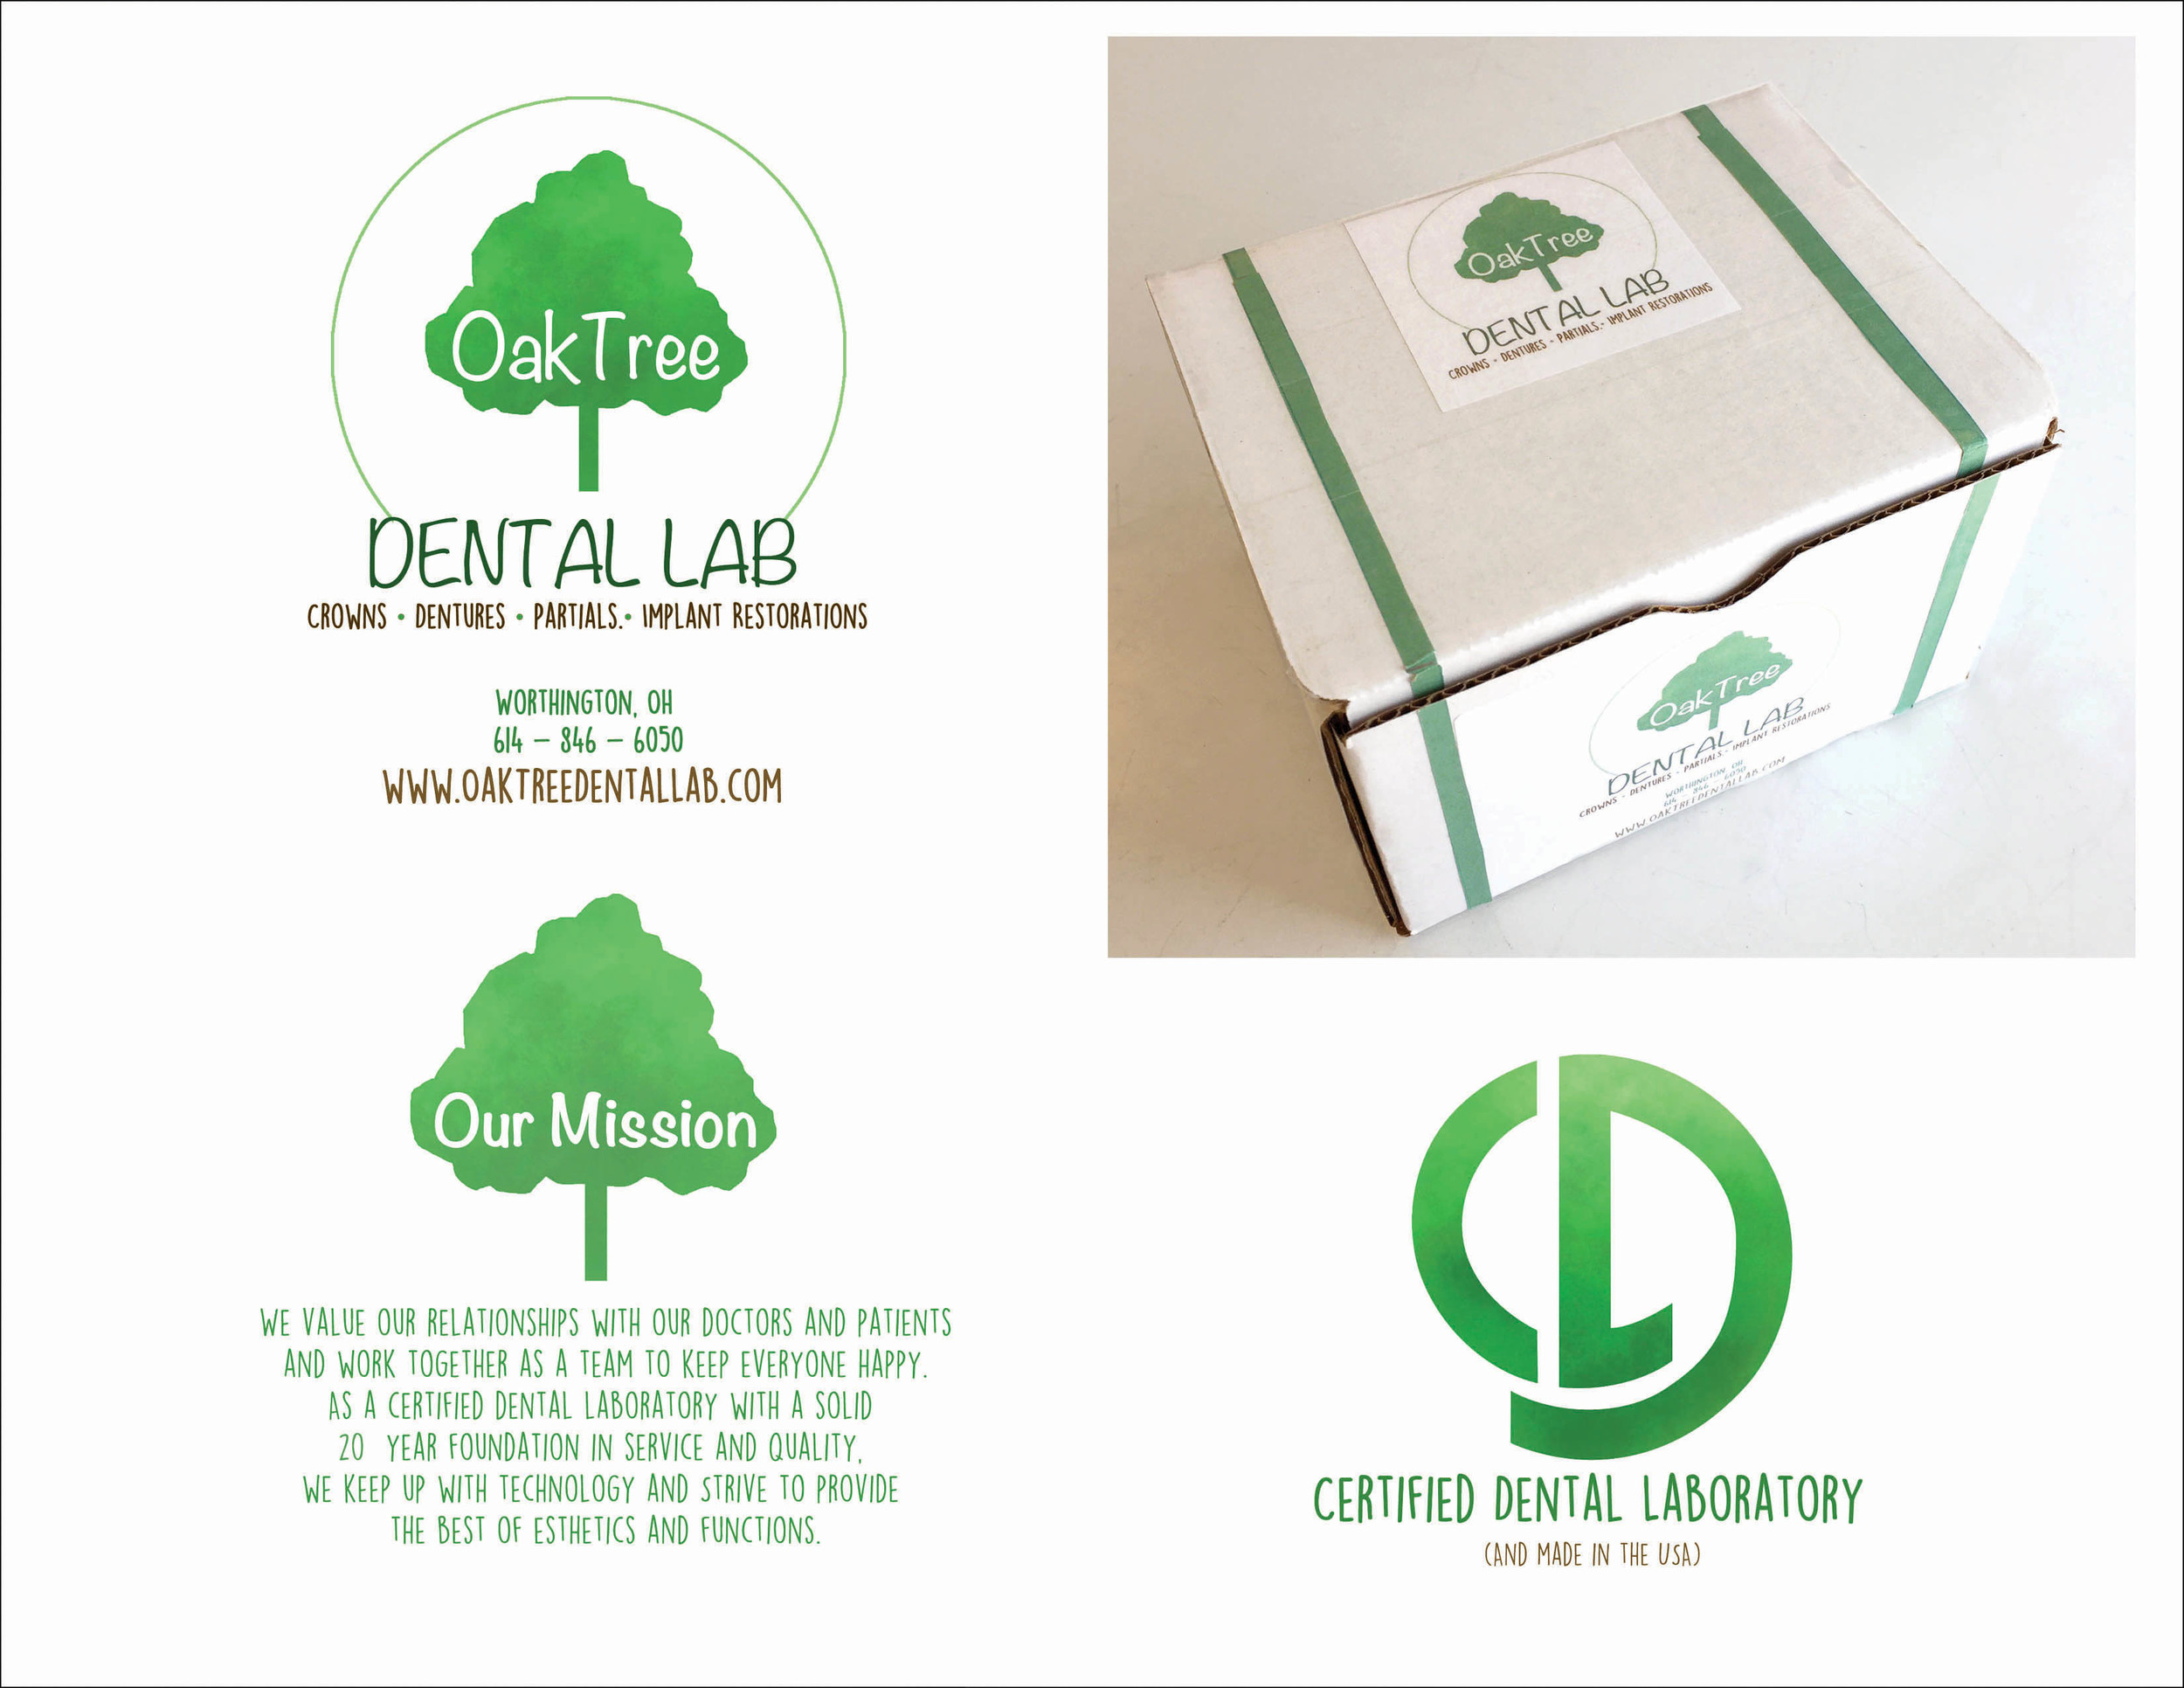 ReBranding Oak Tree Dental Lab